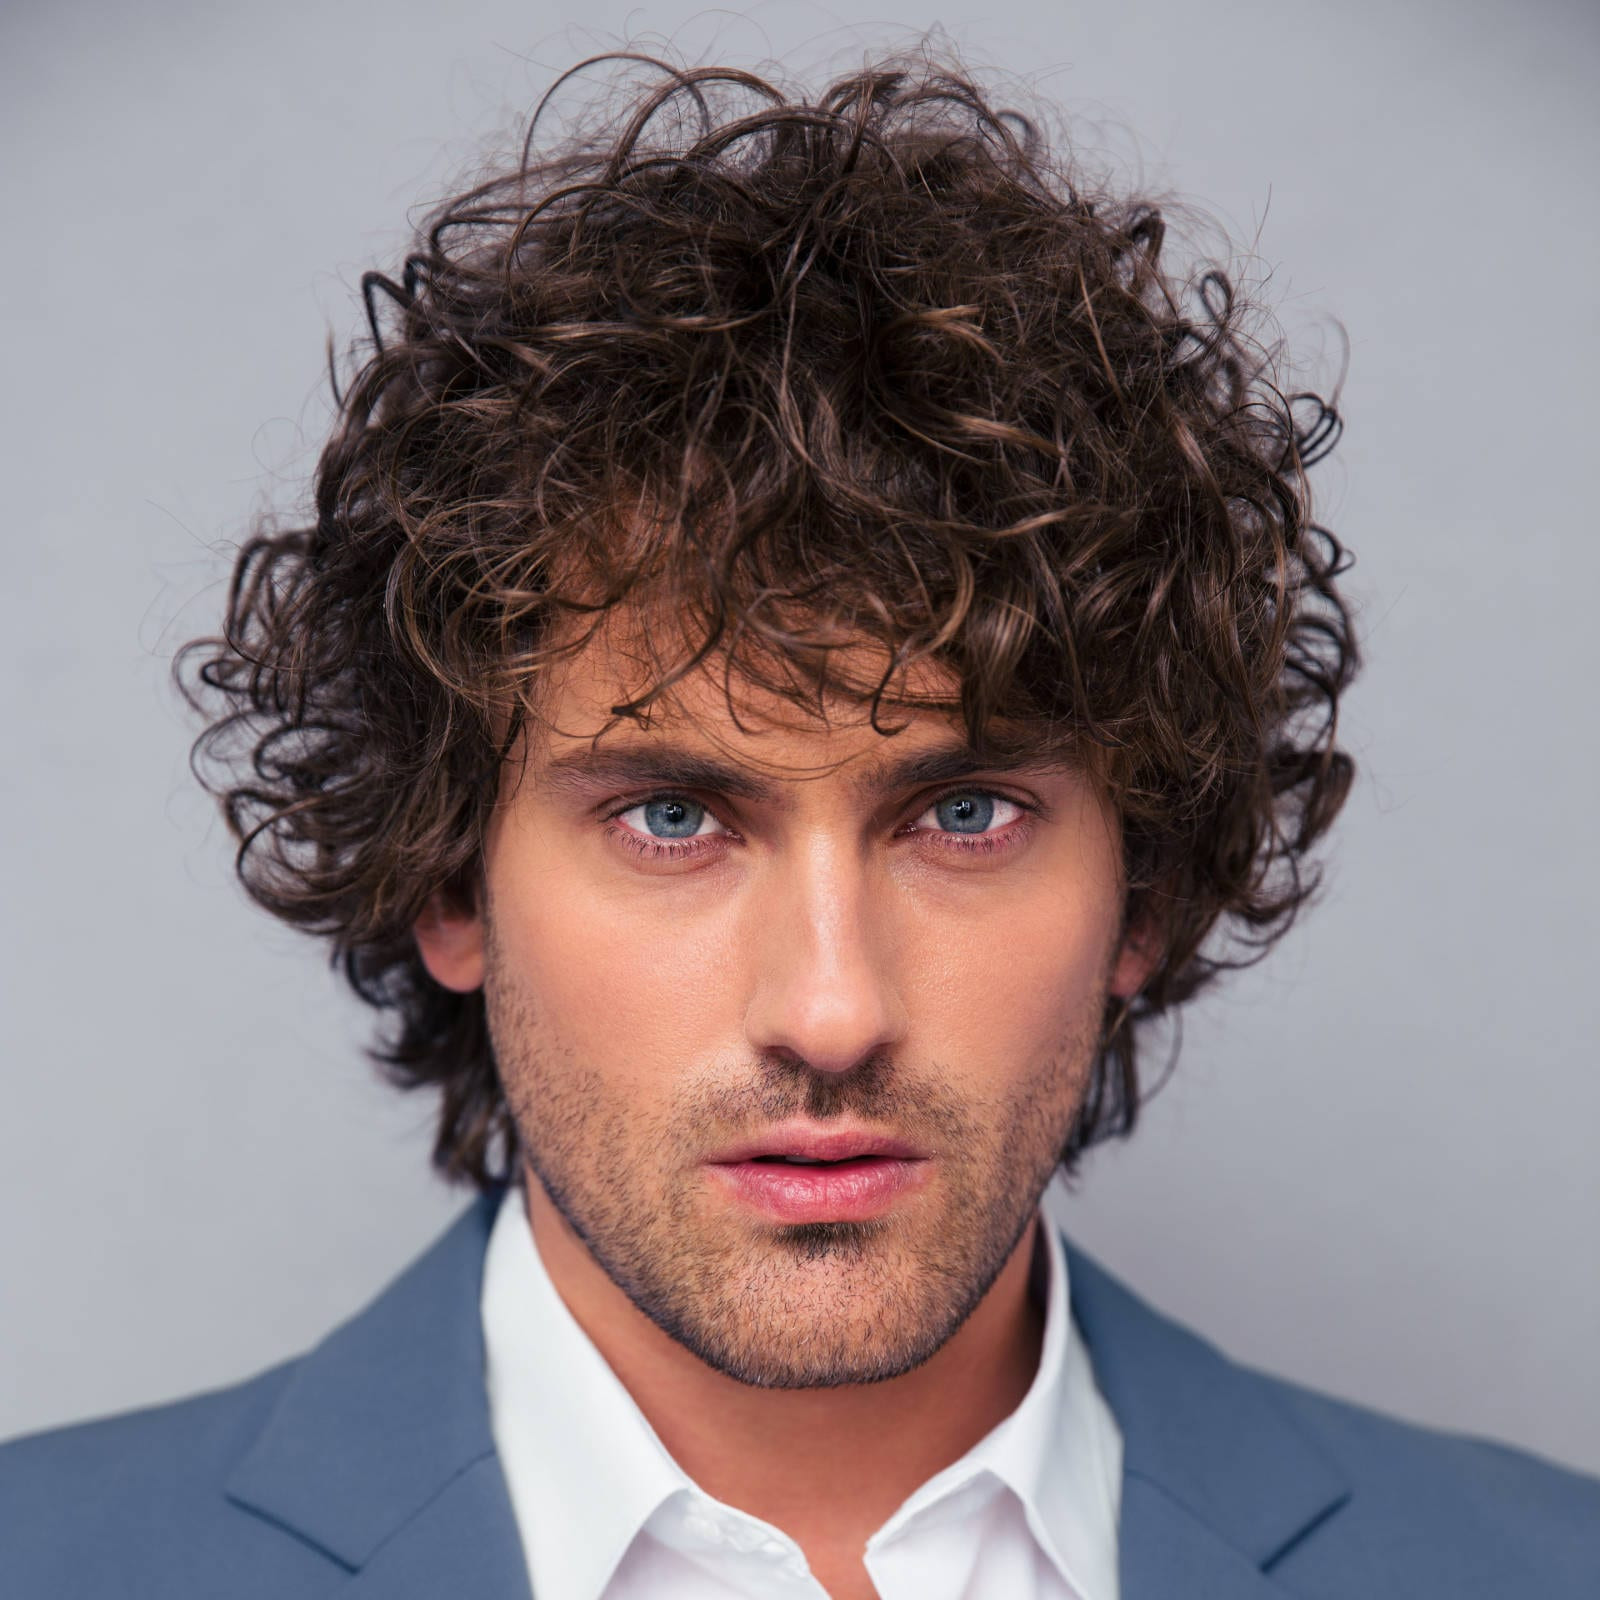 Best ideas about Mens Hairstyles For Curly Hair . Save or Pin 40 Modern Men s Hairstyles for Curly Hair That Will Now.